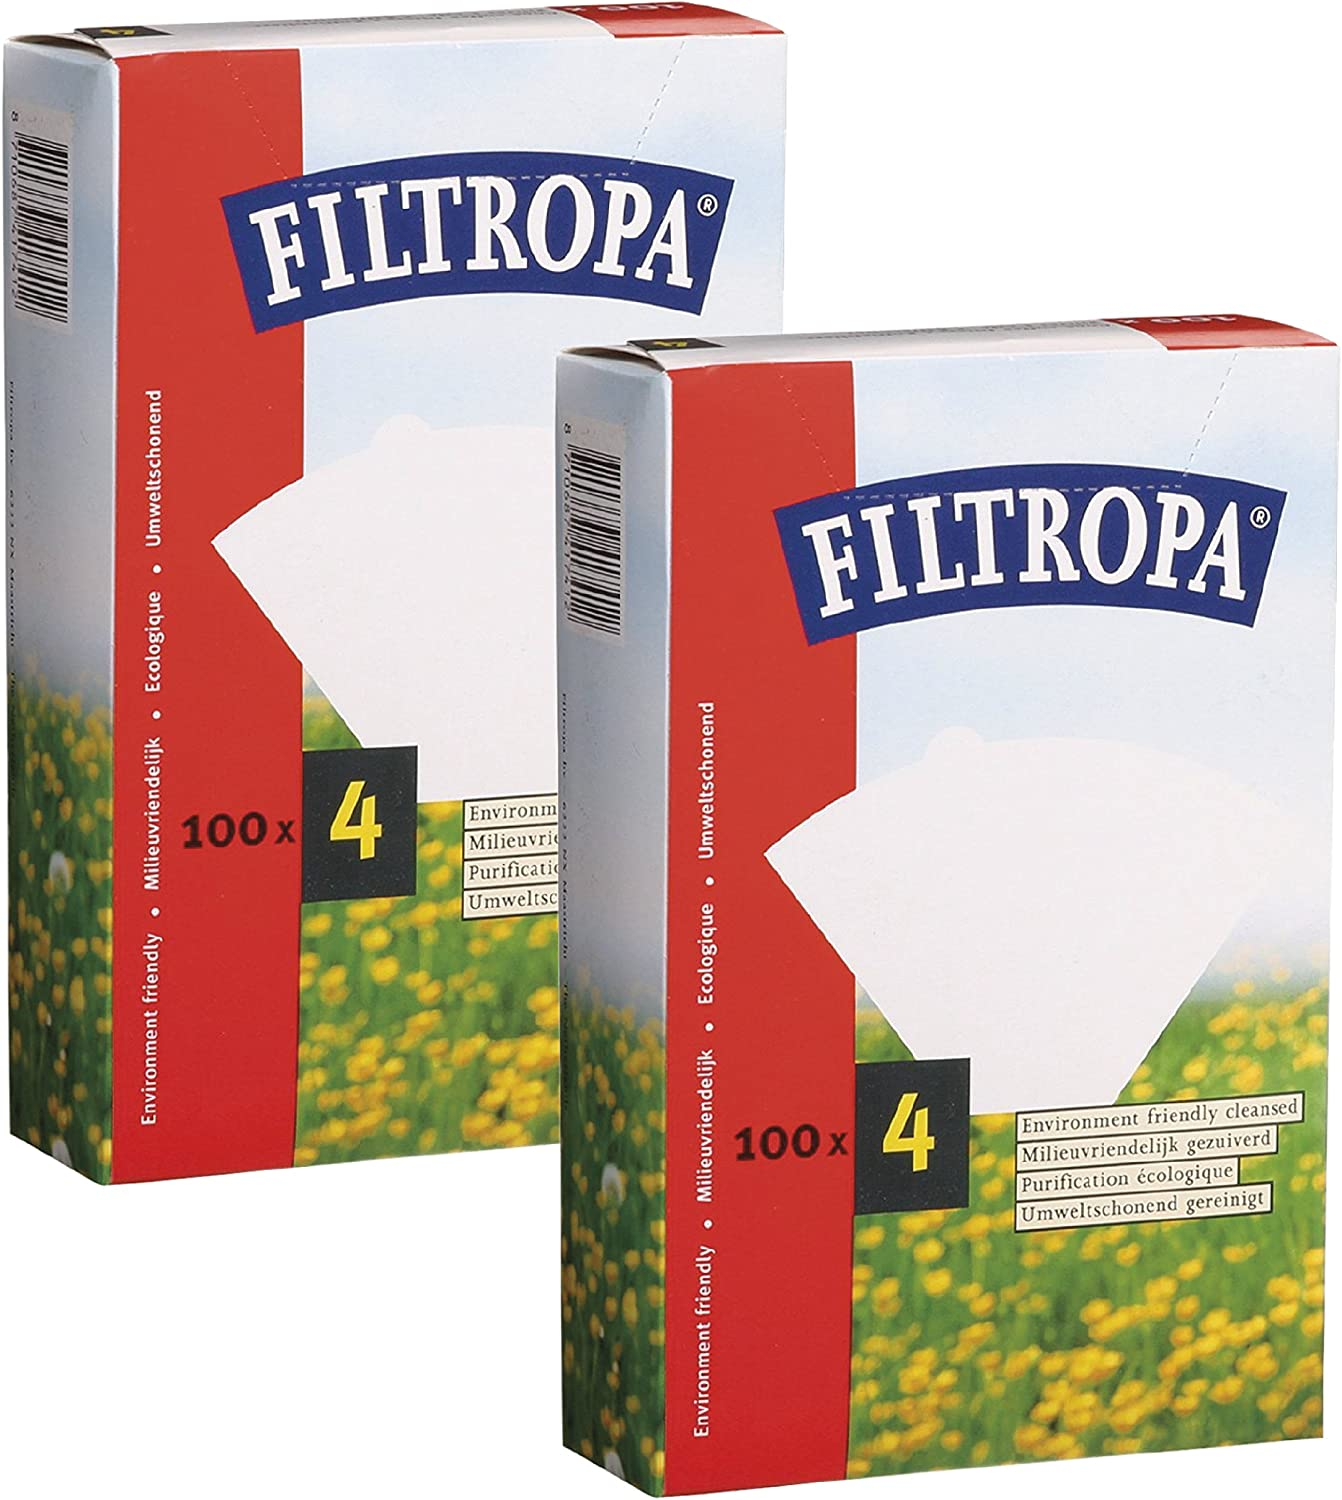 Filtropa 8640/2 Paper Coffee 4-200 Count, No. No. 4 Filter, Set of 2, White